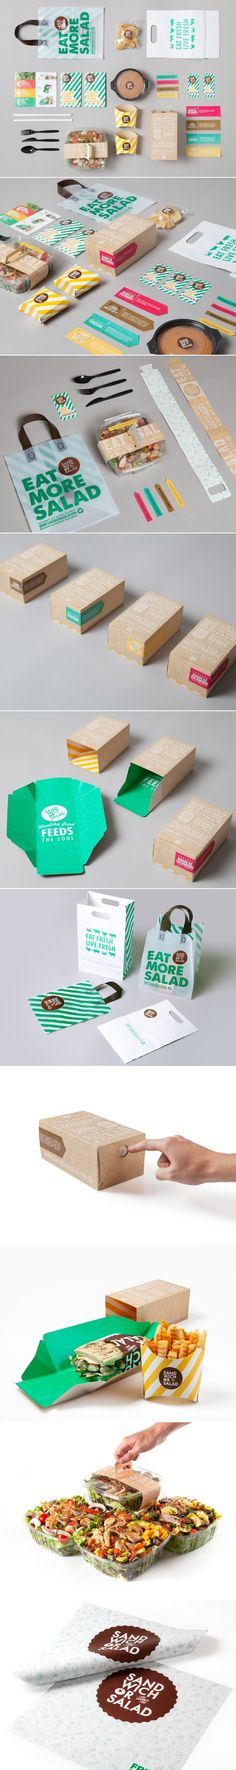 http://www.brandingserved.com/gallery/Sandwich-or-Salad/7446721